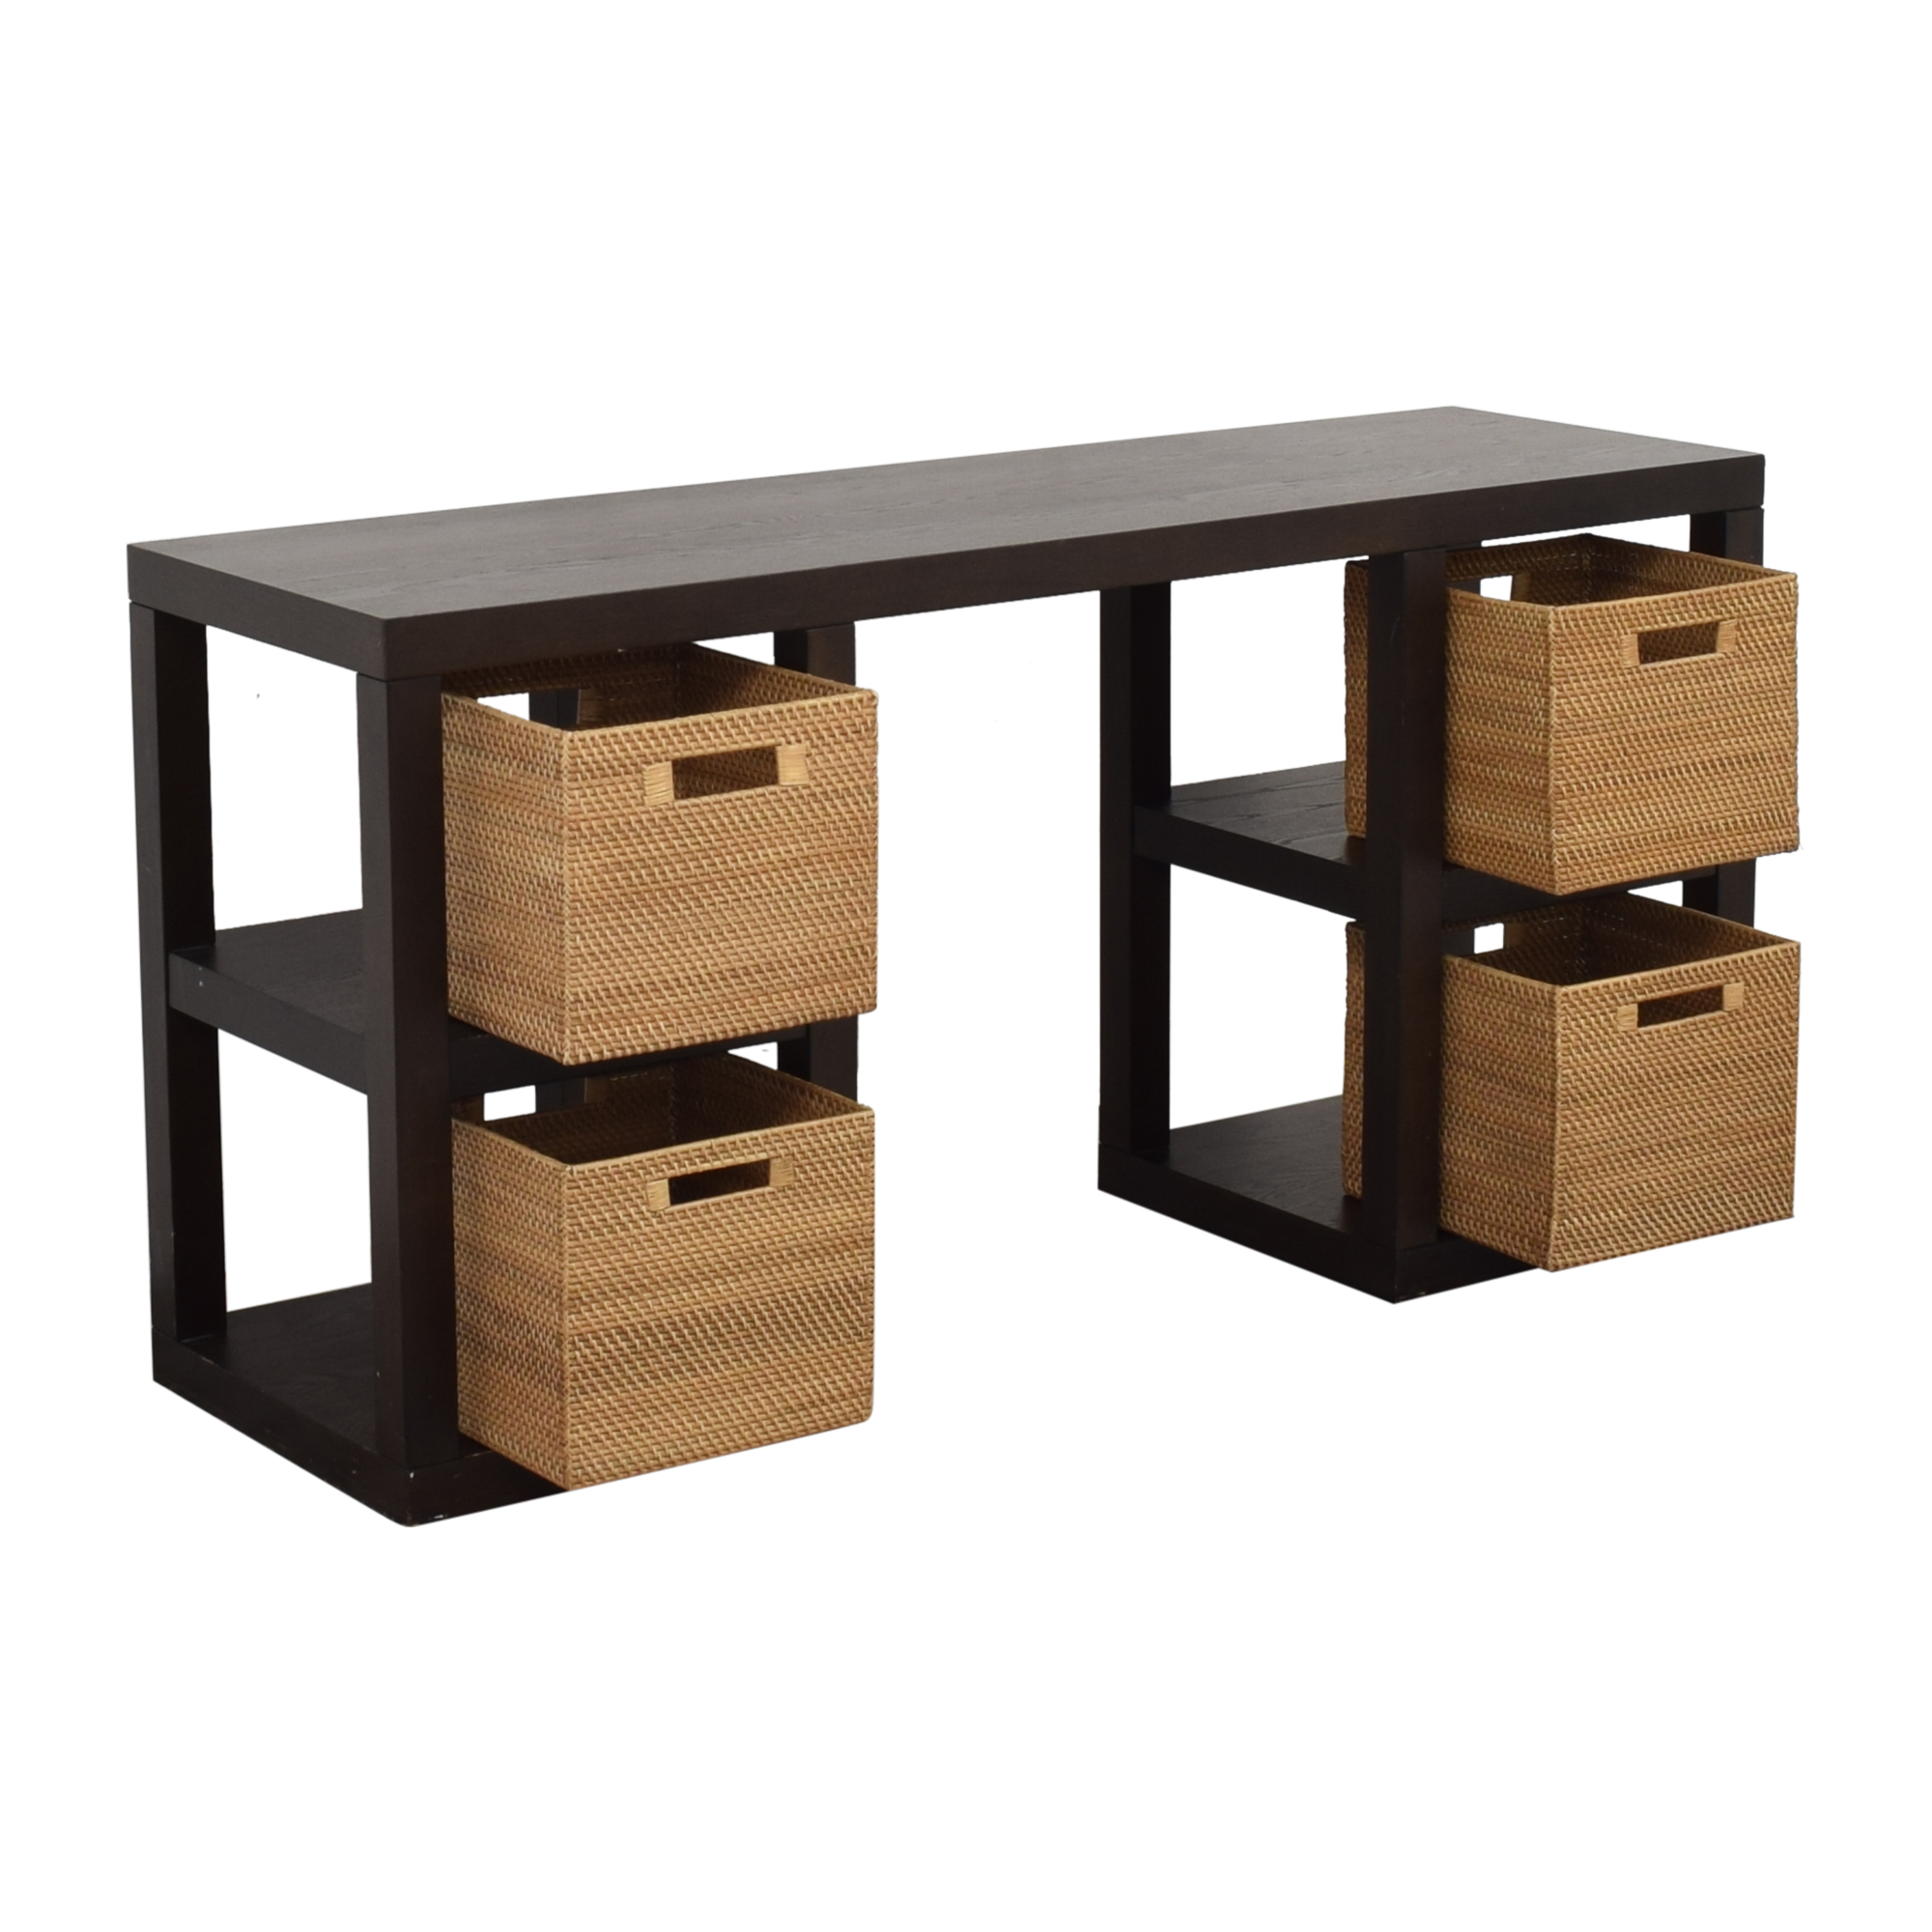 West Elm West Elm 2 x 2 Console Desk black & brown